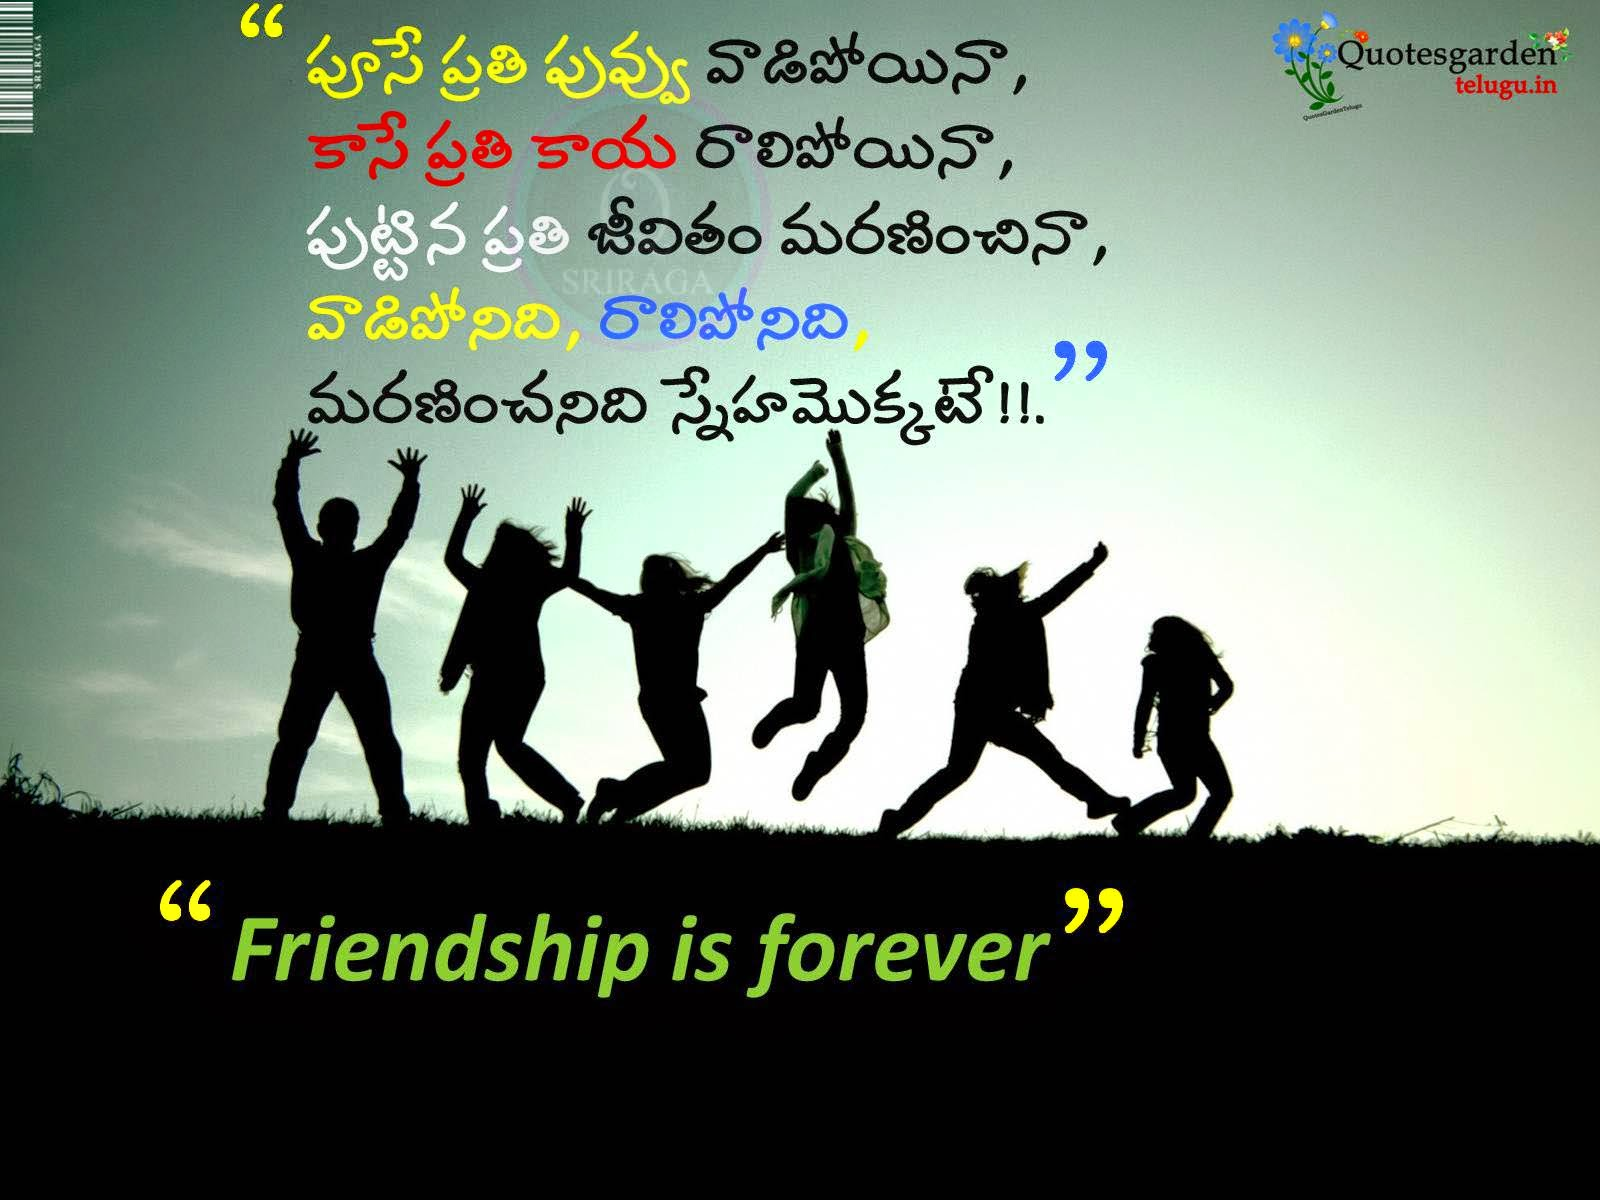 Best Friendship day quotes in telugu | QUOTES GARDEN ...